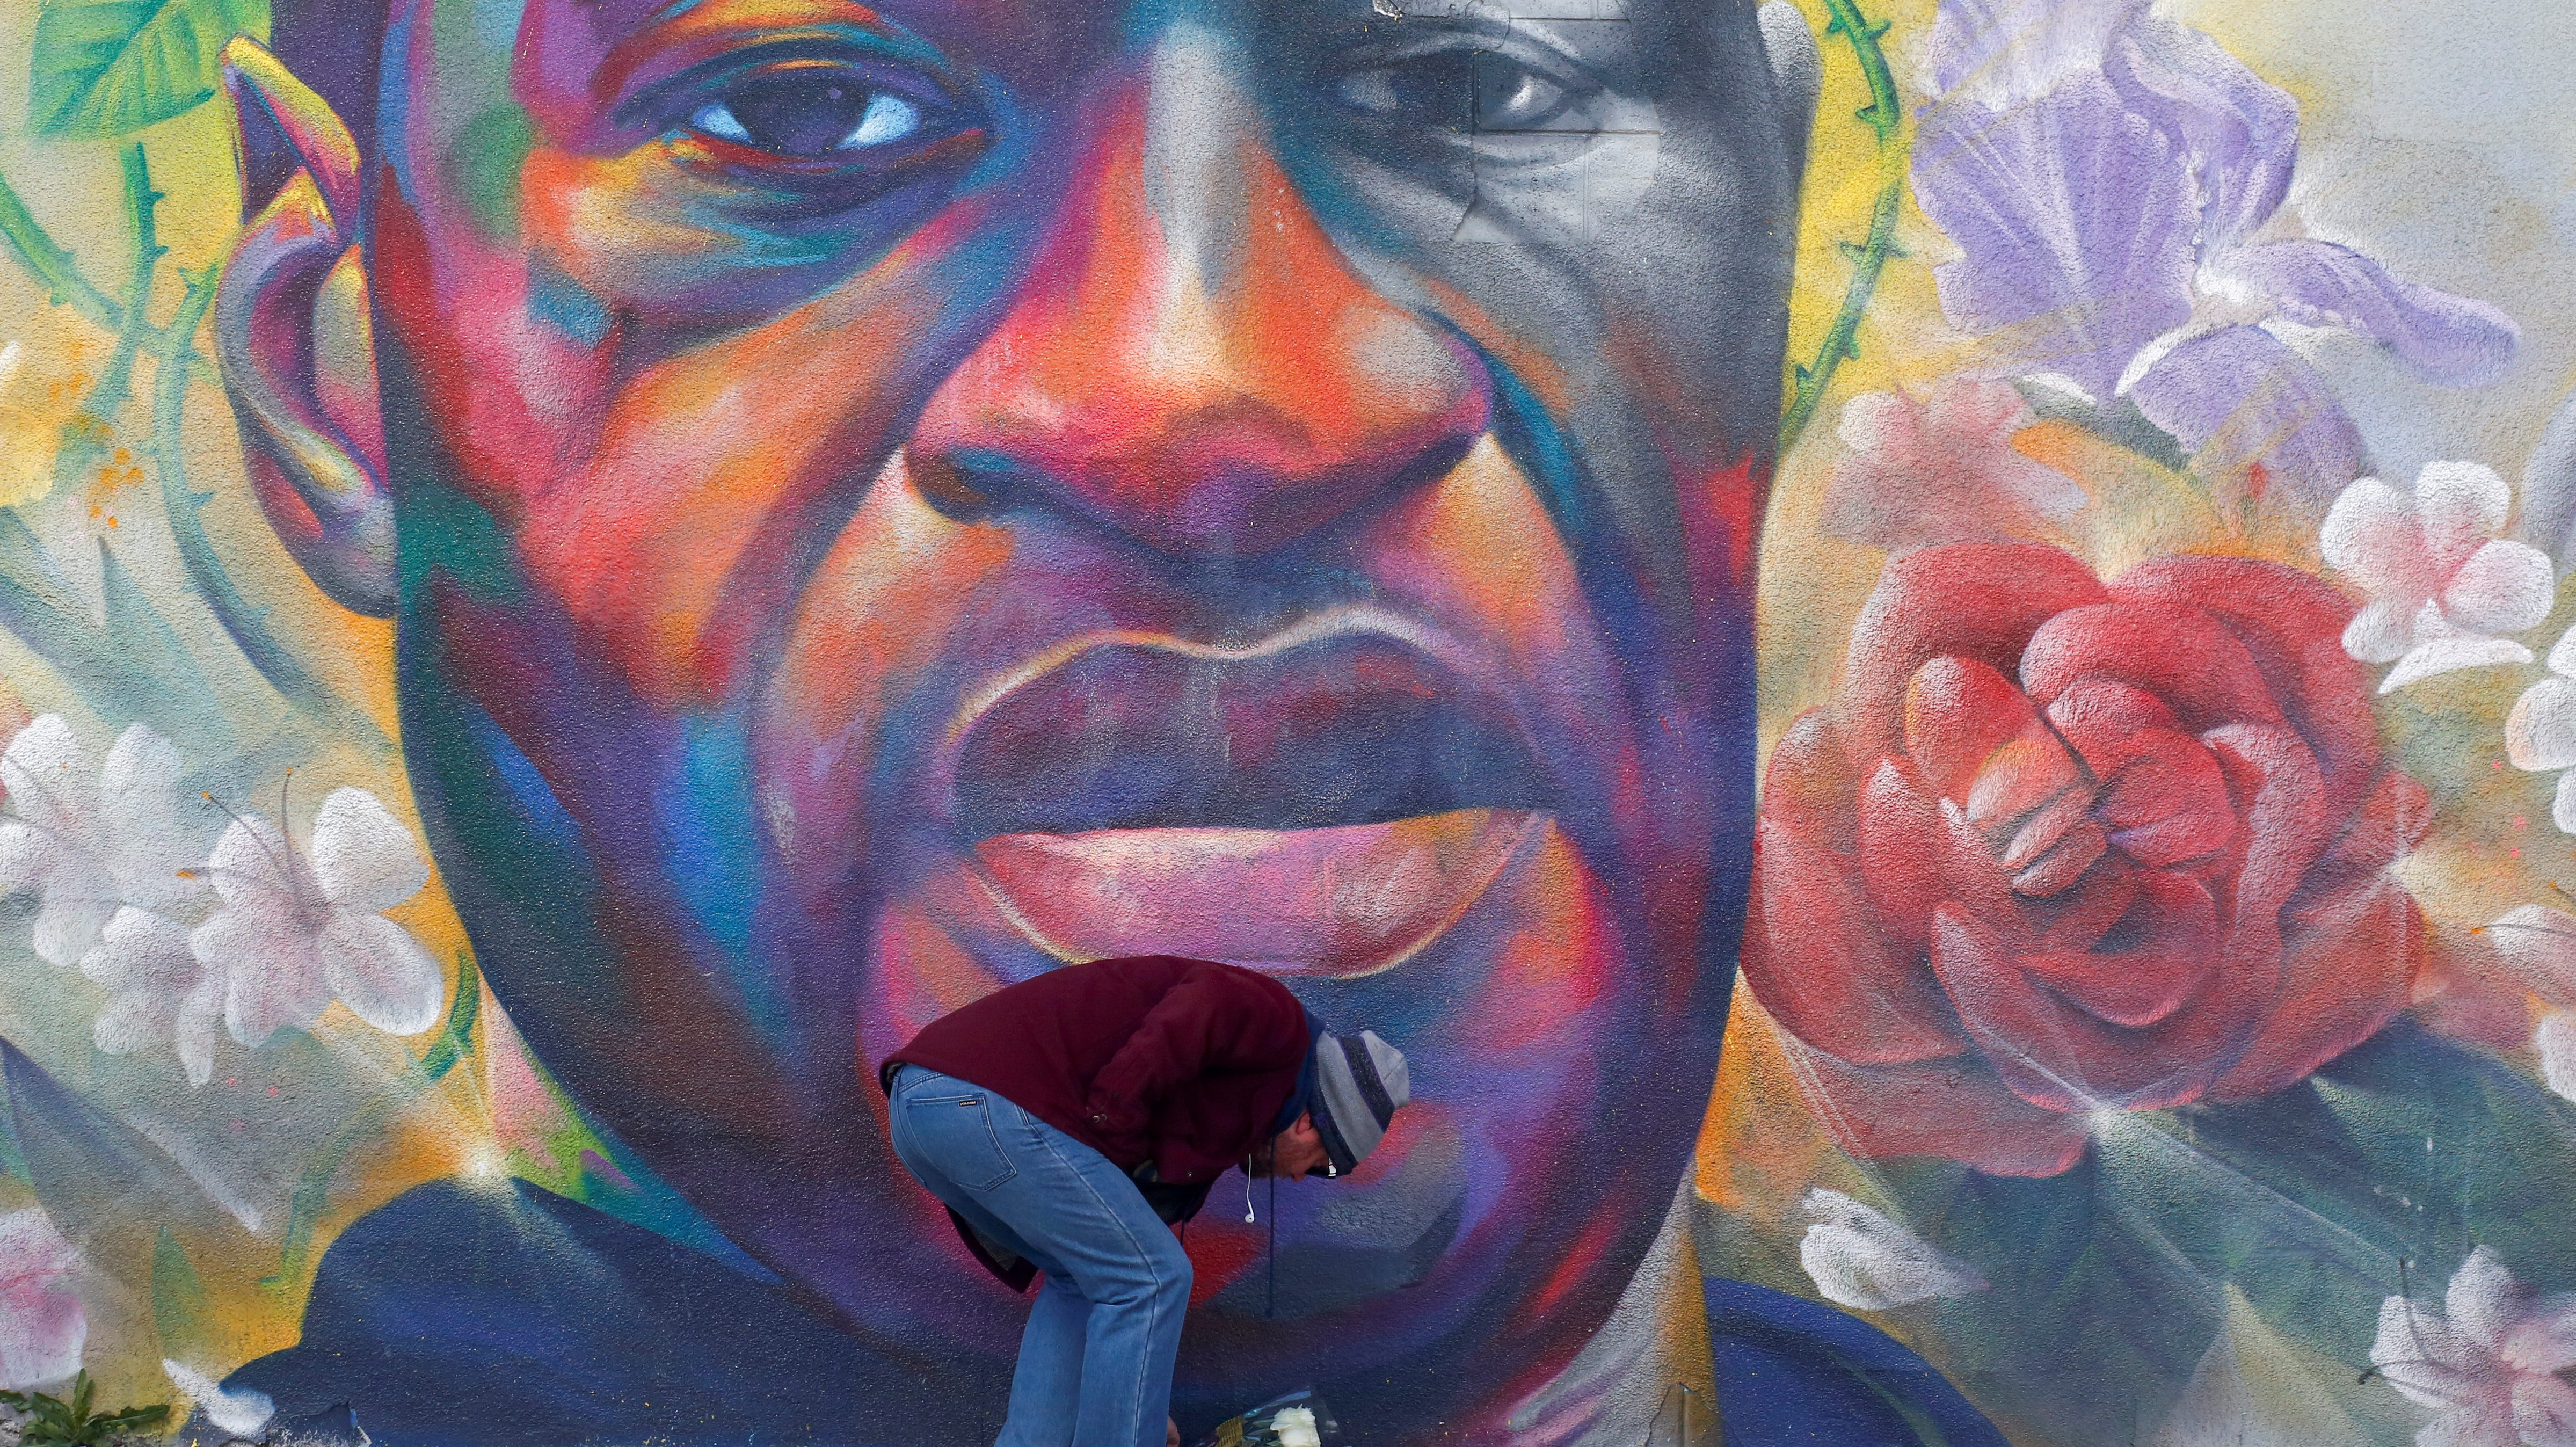 A man places flowers at a mural of George Floyd after the verdict in the trial of former Minneapolis police officer Derek Chauvin, found guilty of the death of Floyd, in Denver, Colorado, U.S., April 20, 2021.